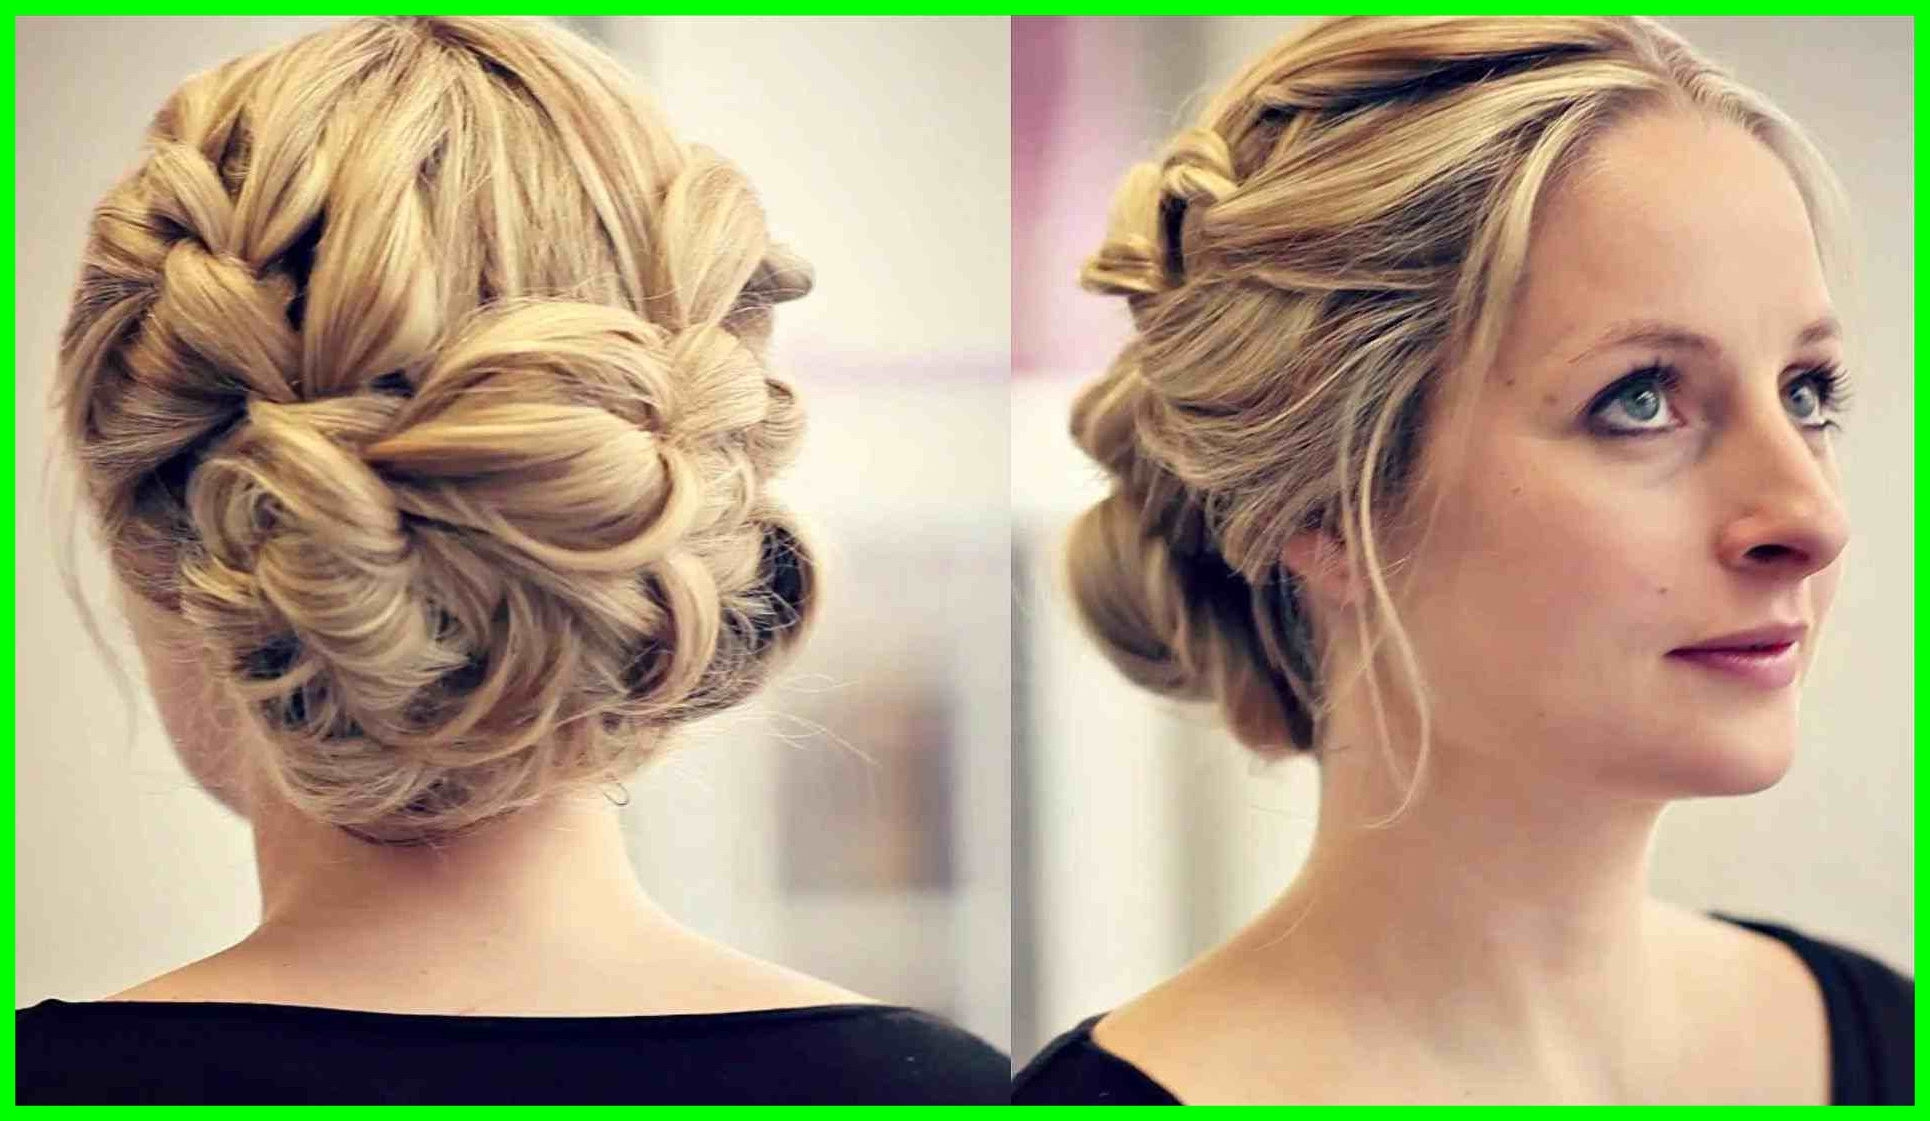 15 Best Ideas of Updos Wedding Hairstyles For Short Hair